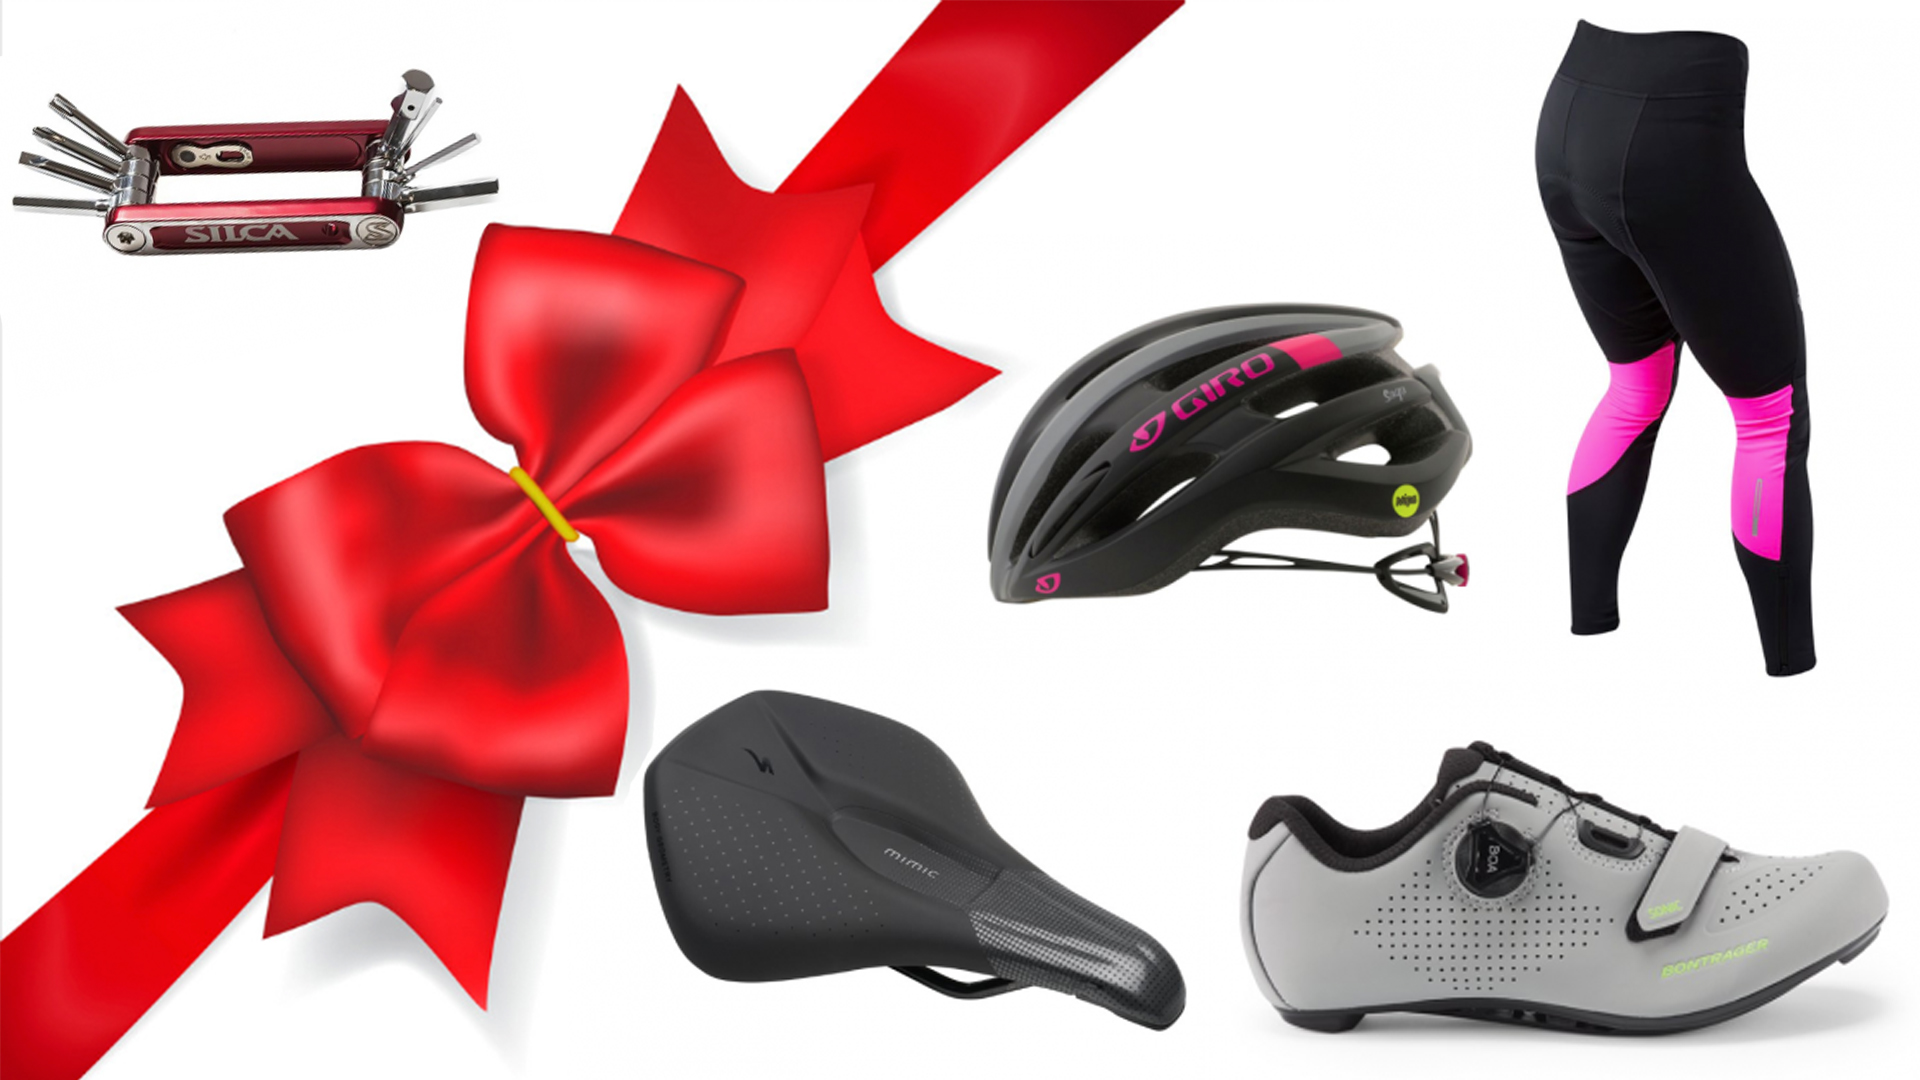 Shopping for a female cyclist? Check out these gifts that are sure to please.